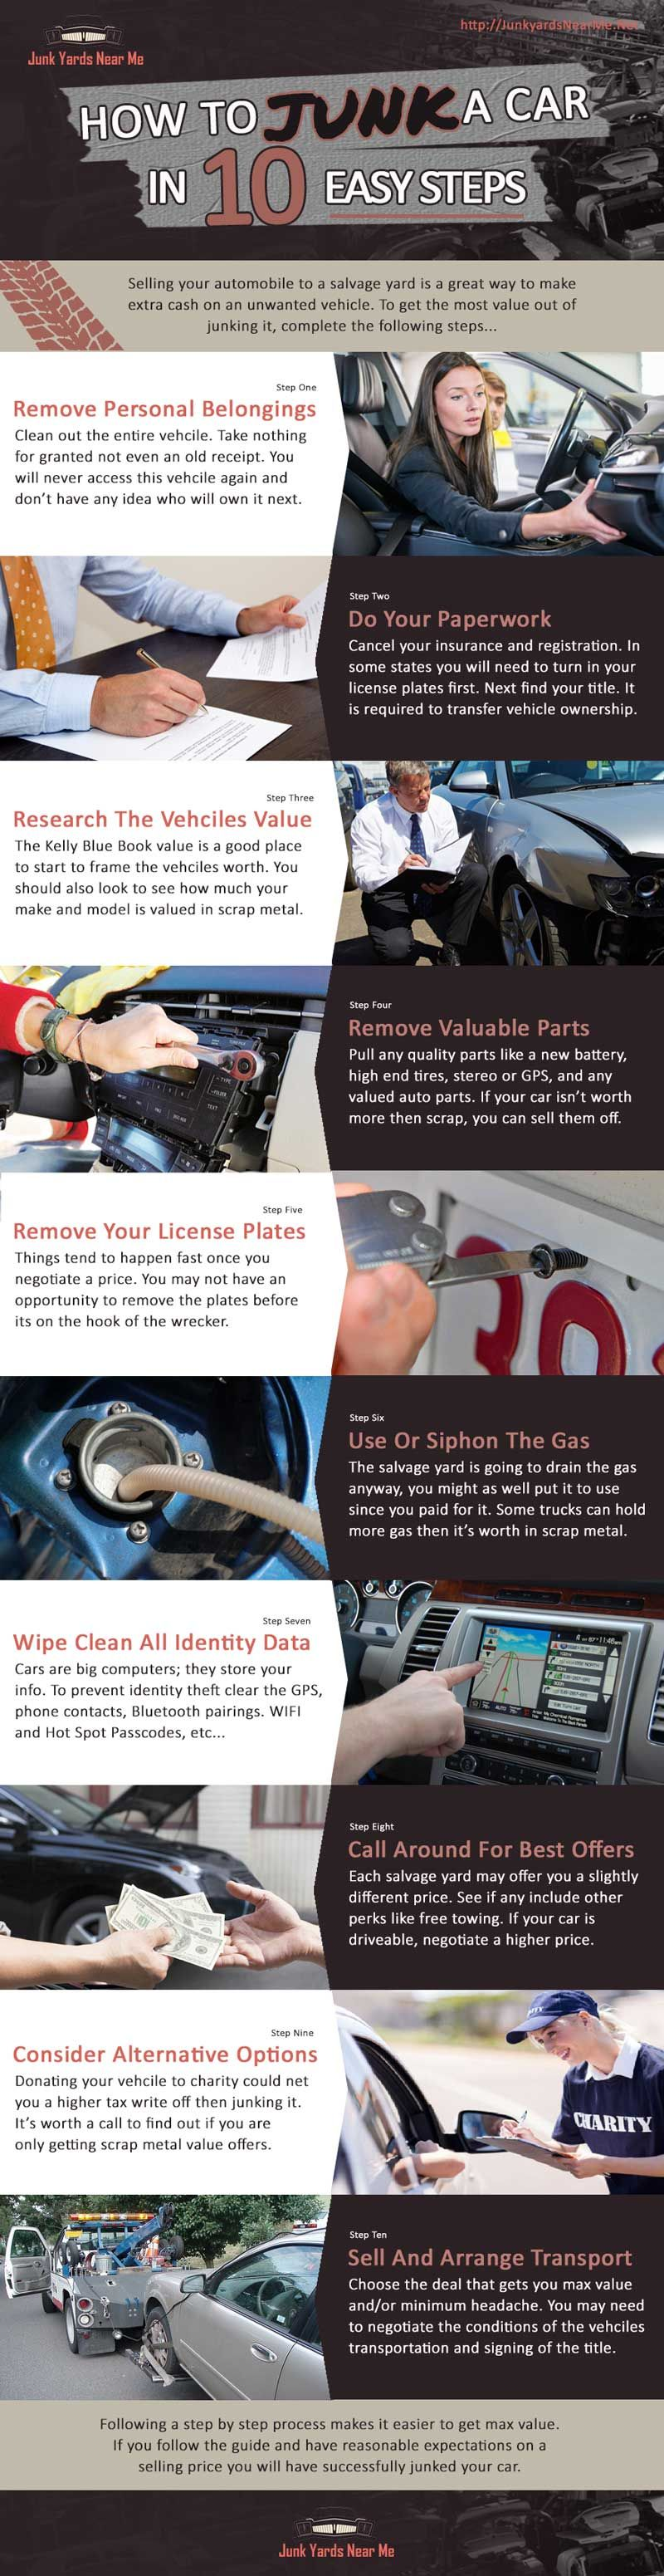 How to junk a car in 10 easy steps in 2020 car used car